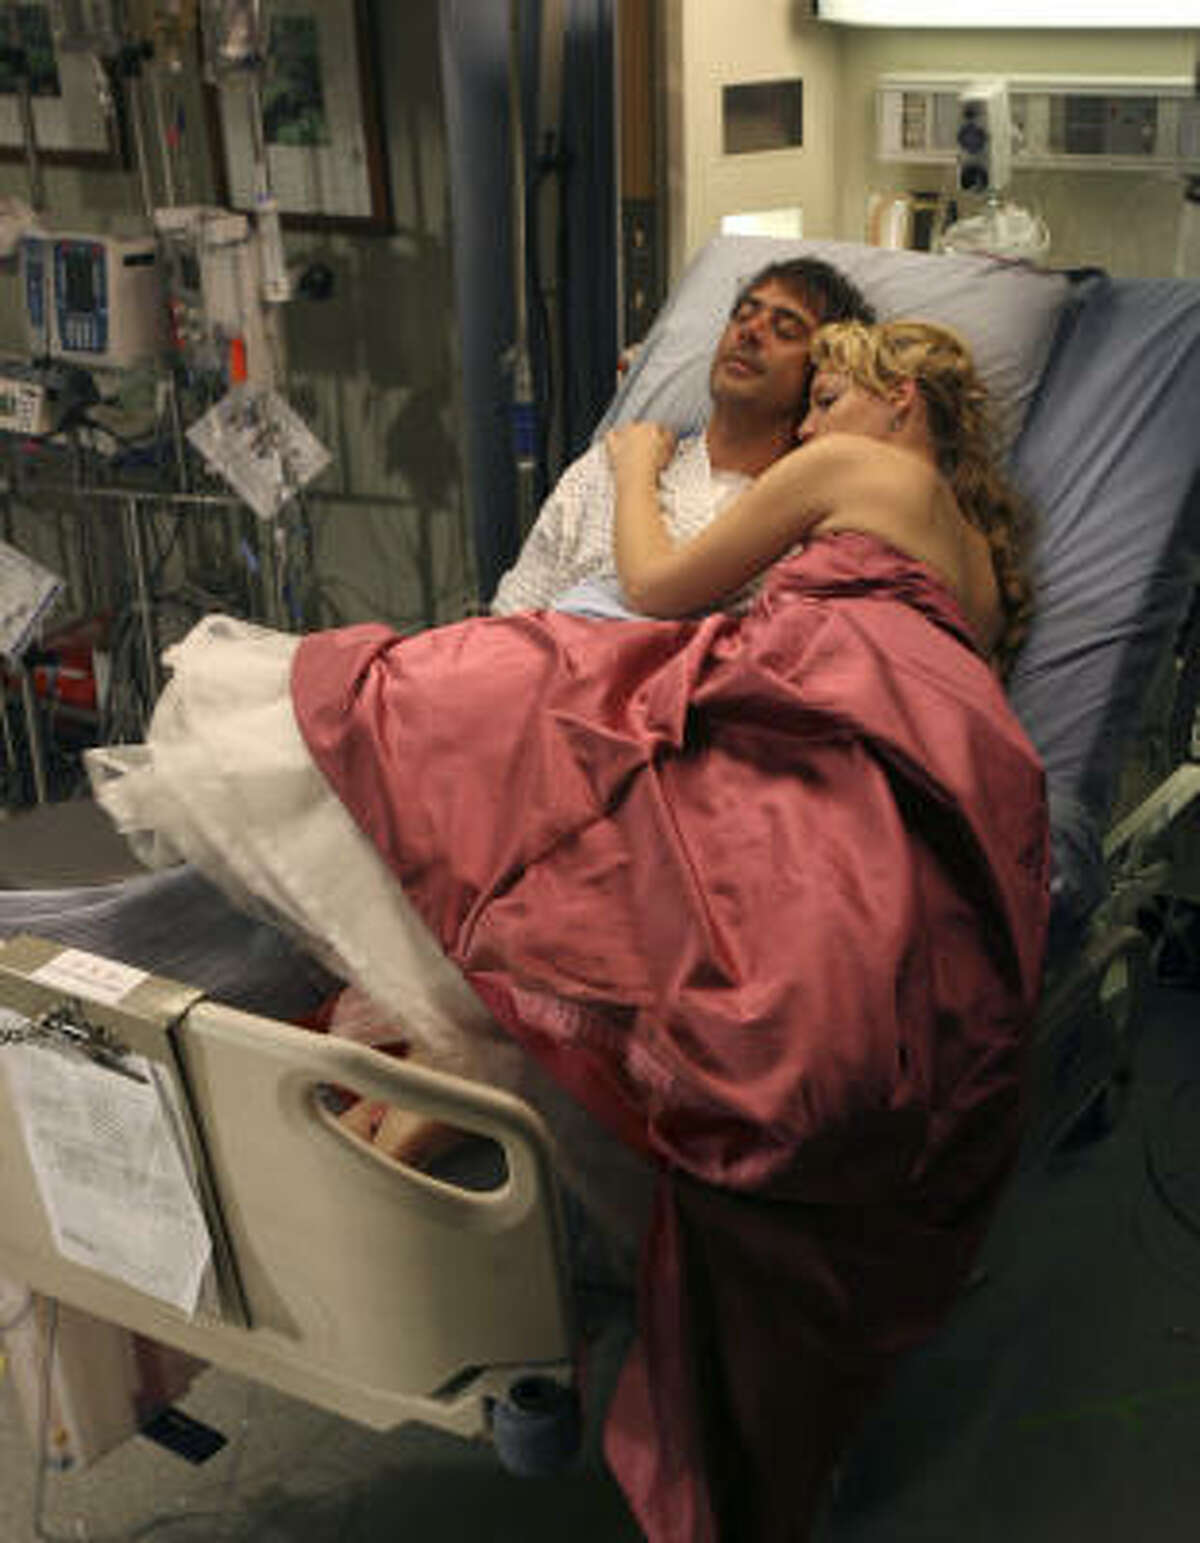 Grey's Anatomy, starring Jeffrey Dean Morgan and Katherine Heigl, scored 11 Emmy nominations.